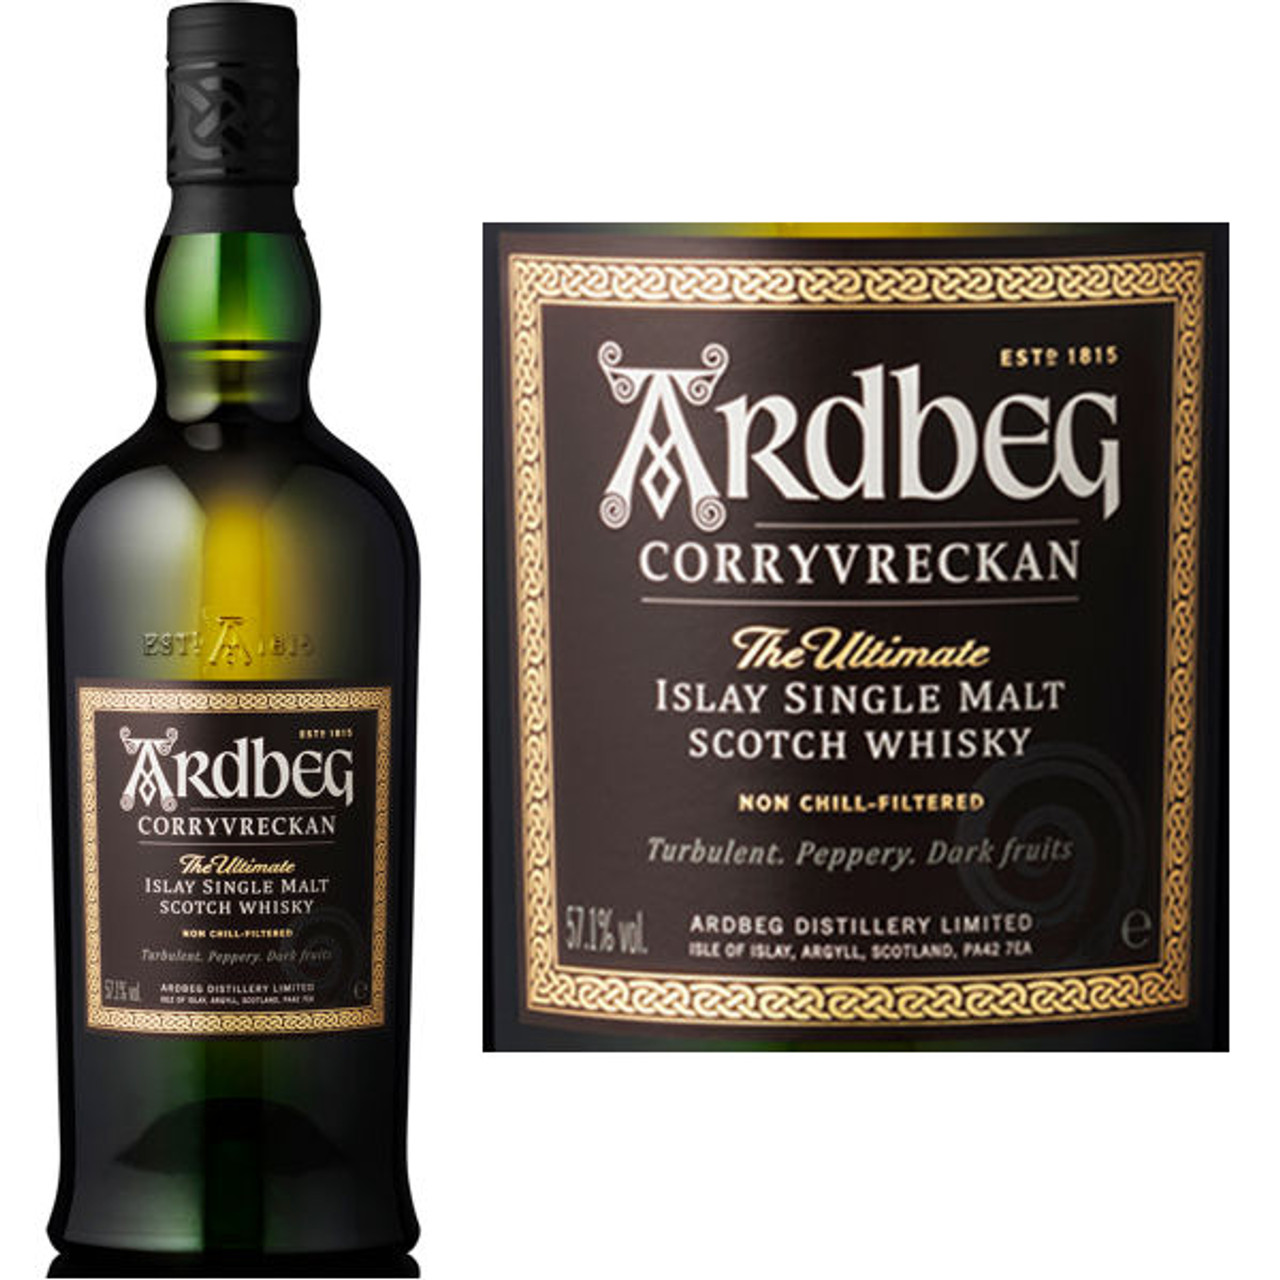 Ardbeg Corryvreckan Islay Single Malt Scotch 750ml